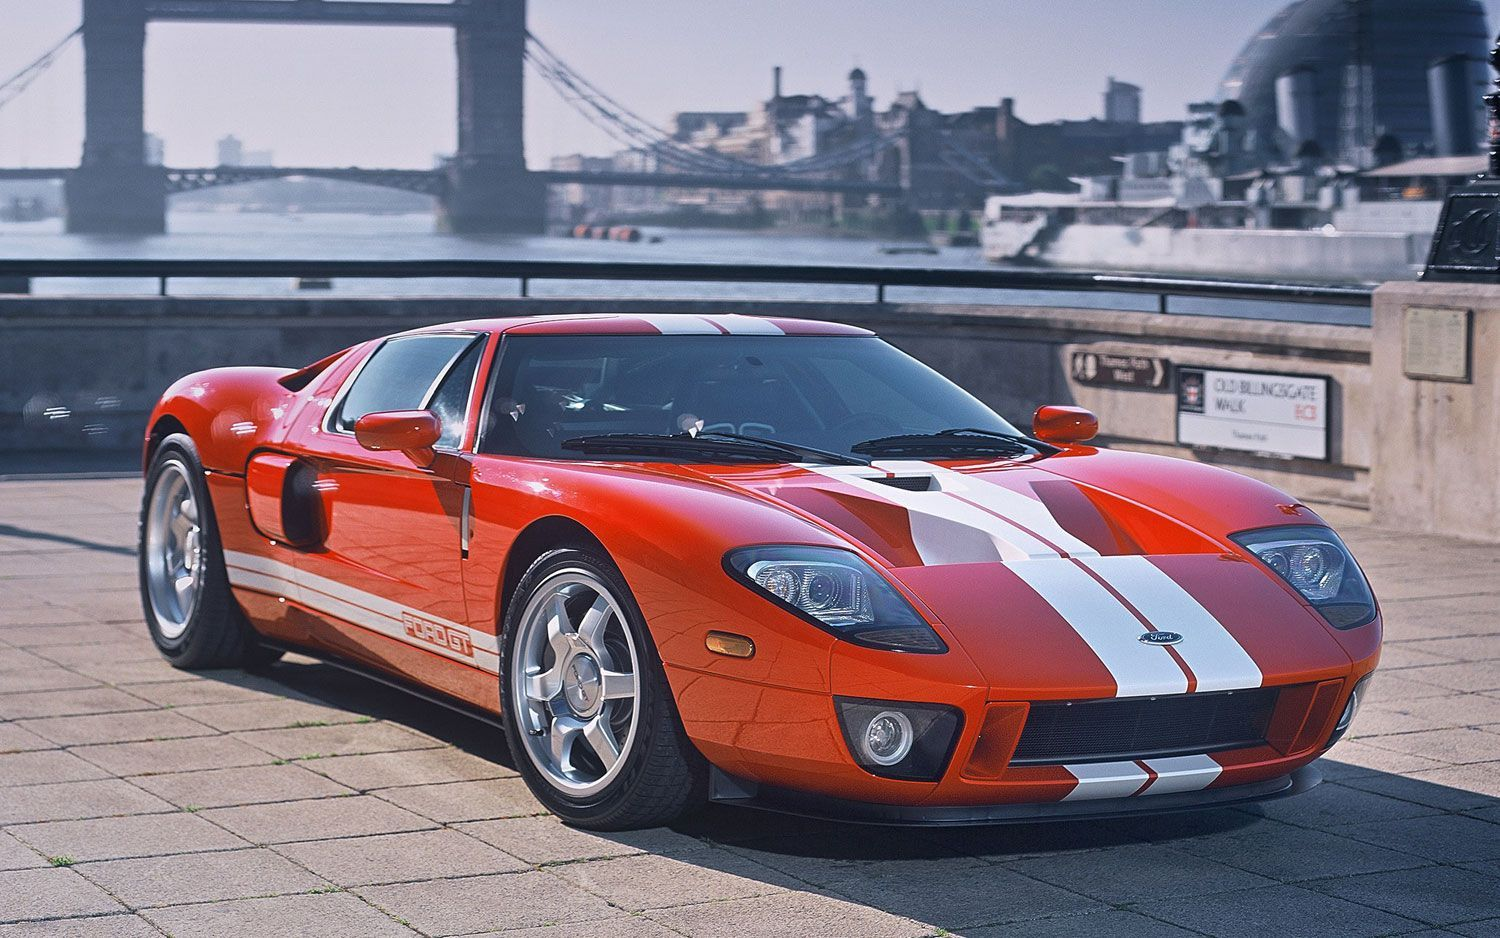 2019 Ford Gt40 Check More At Http Www Best Cars Club 2018 04 09 2019 Ford Gt40 Ford Gt Ford Gt40 Car